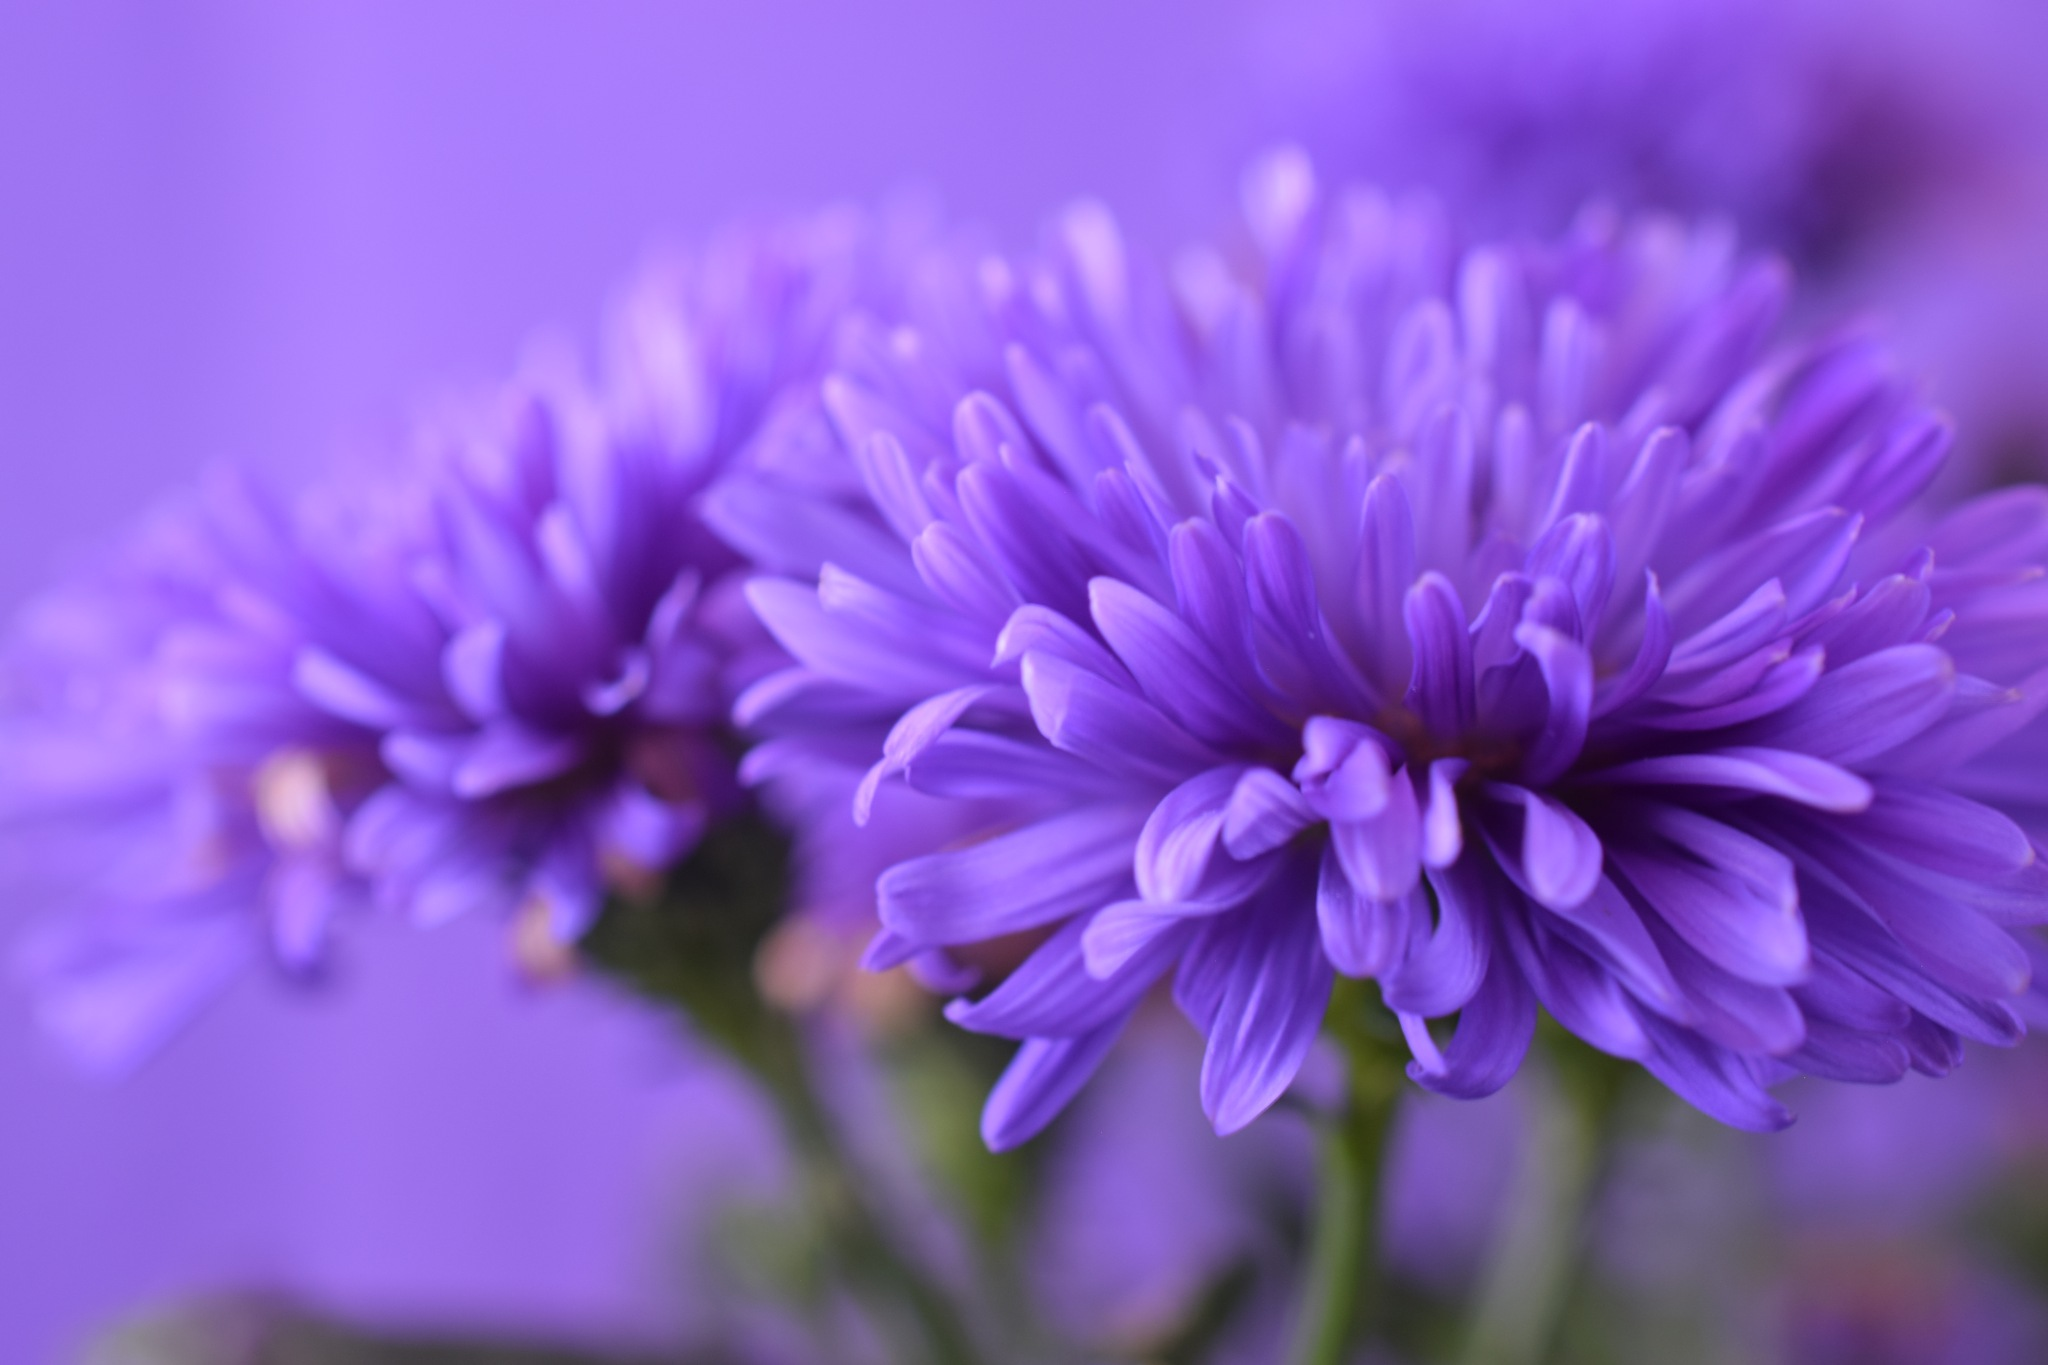 Aster victoria blomma  by Theresia Buskas